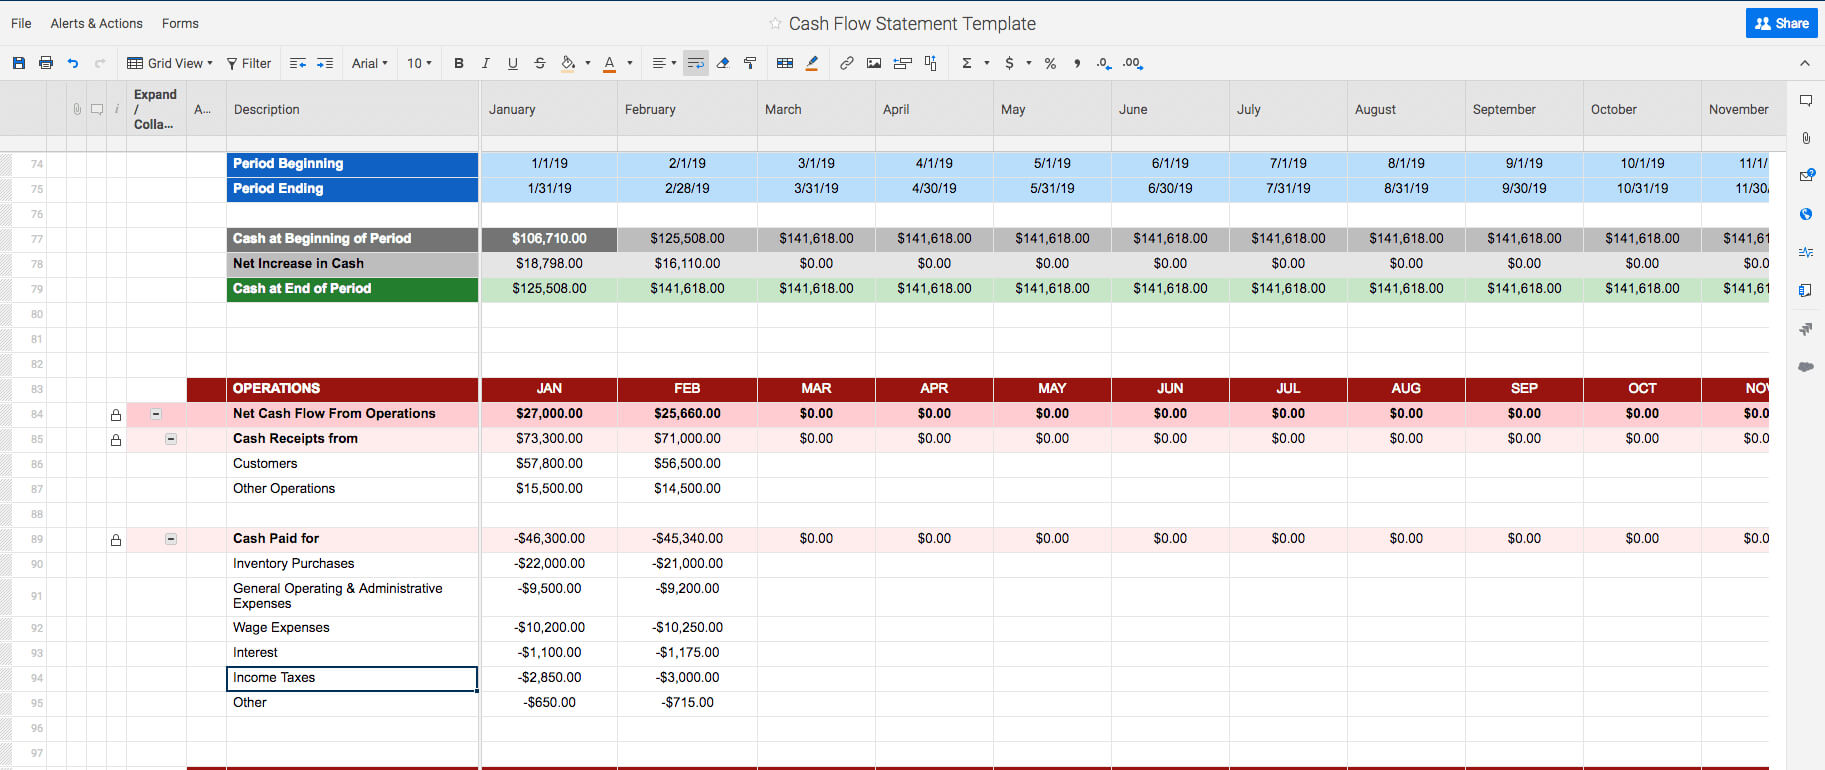 Free Cash Flow Statement Templates | Smartsheet inside Liquidity Report Template